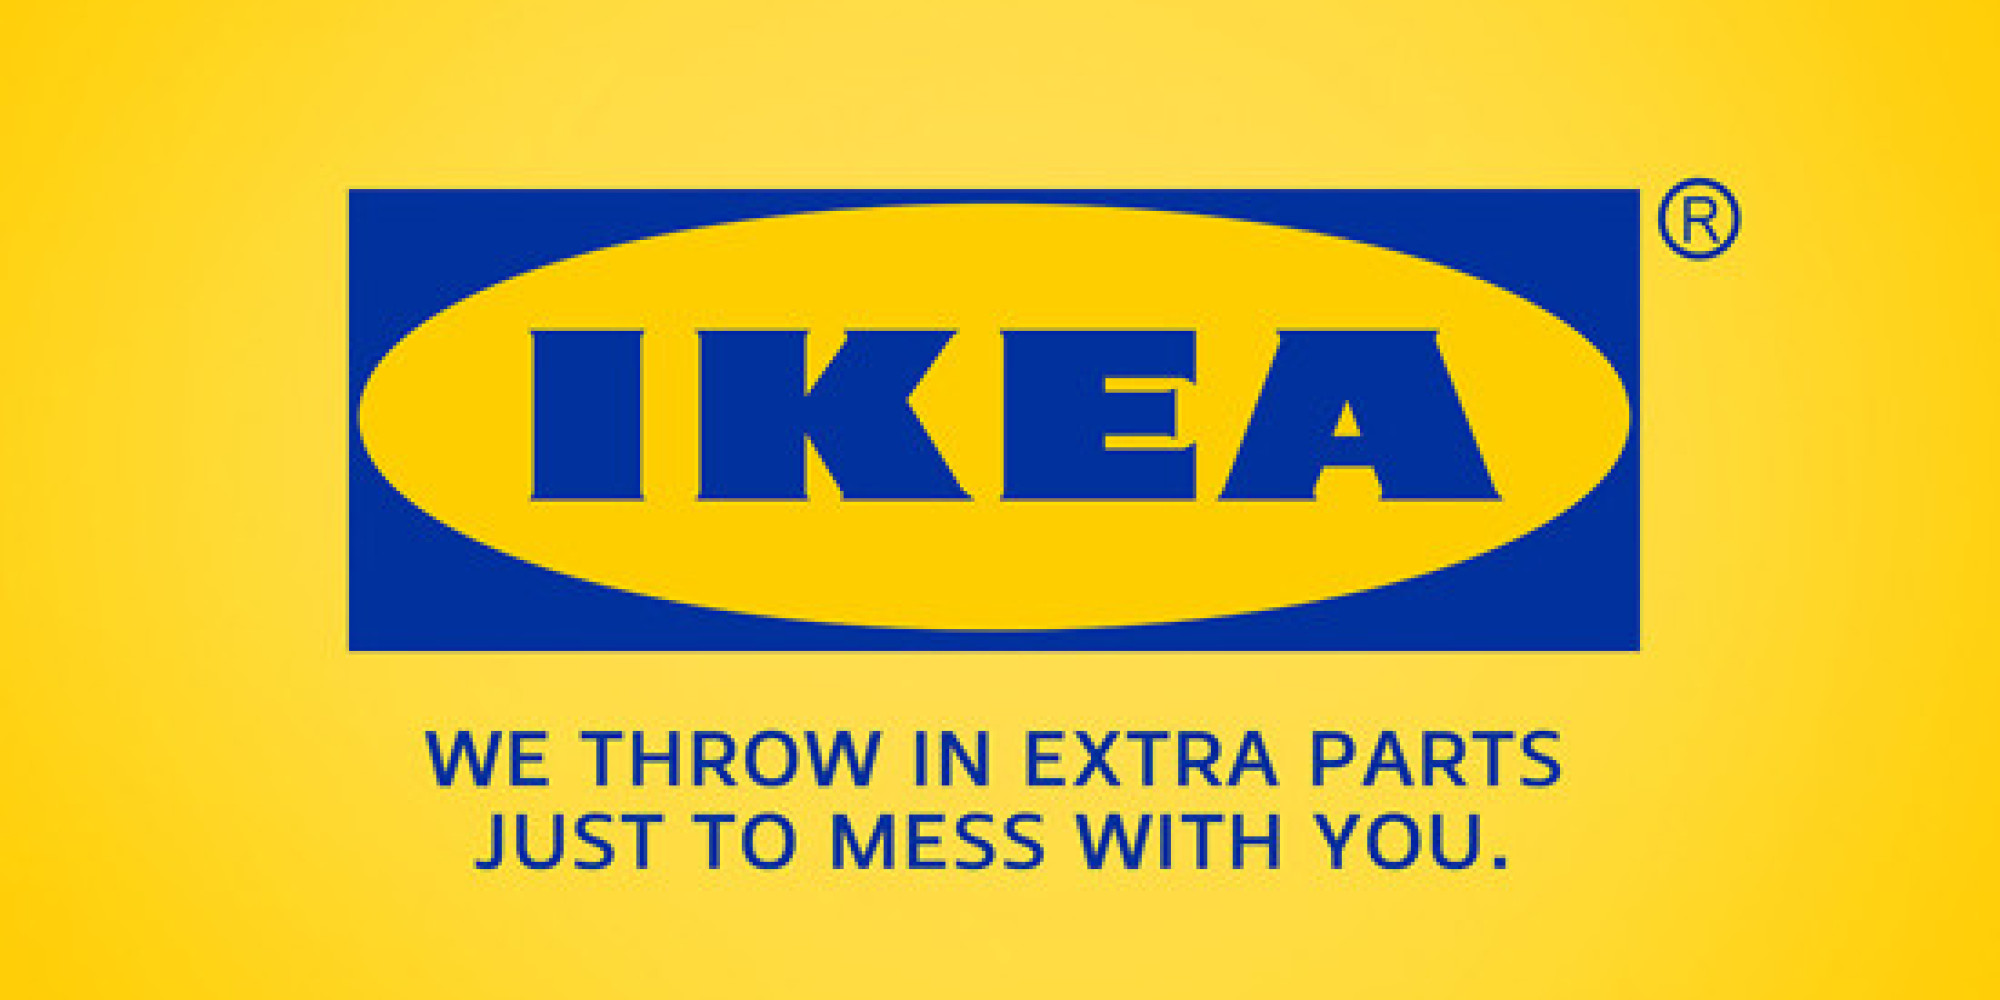 Furniture advertising slogans - 26 Slogans That Frankly Make More Sense Than The Real Ones Pt 3 Huffpost